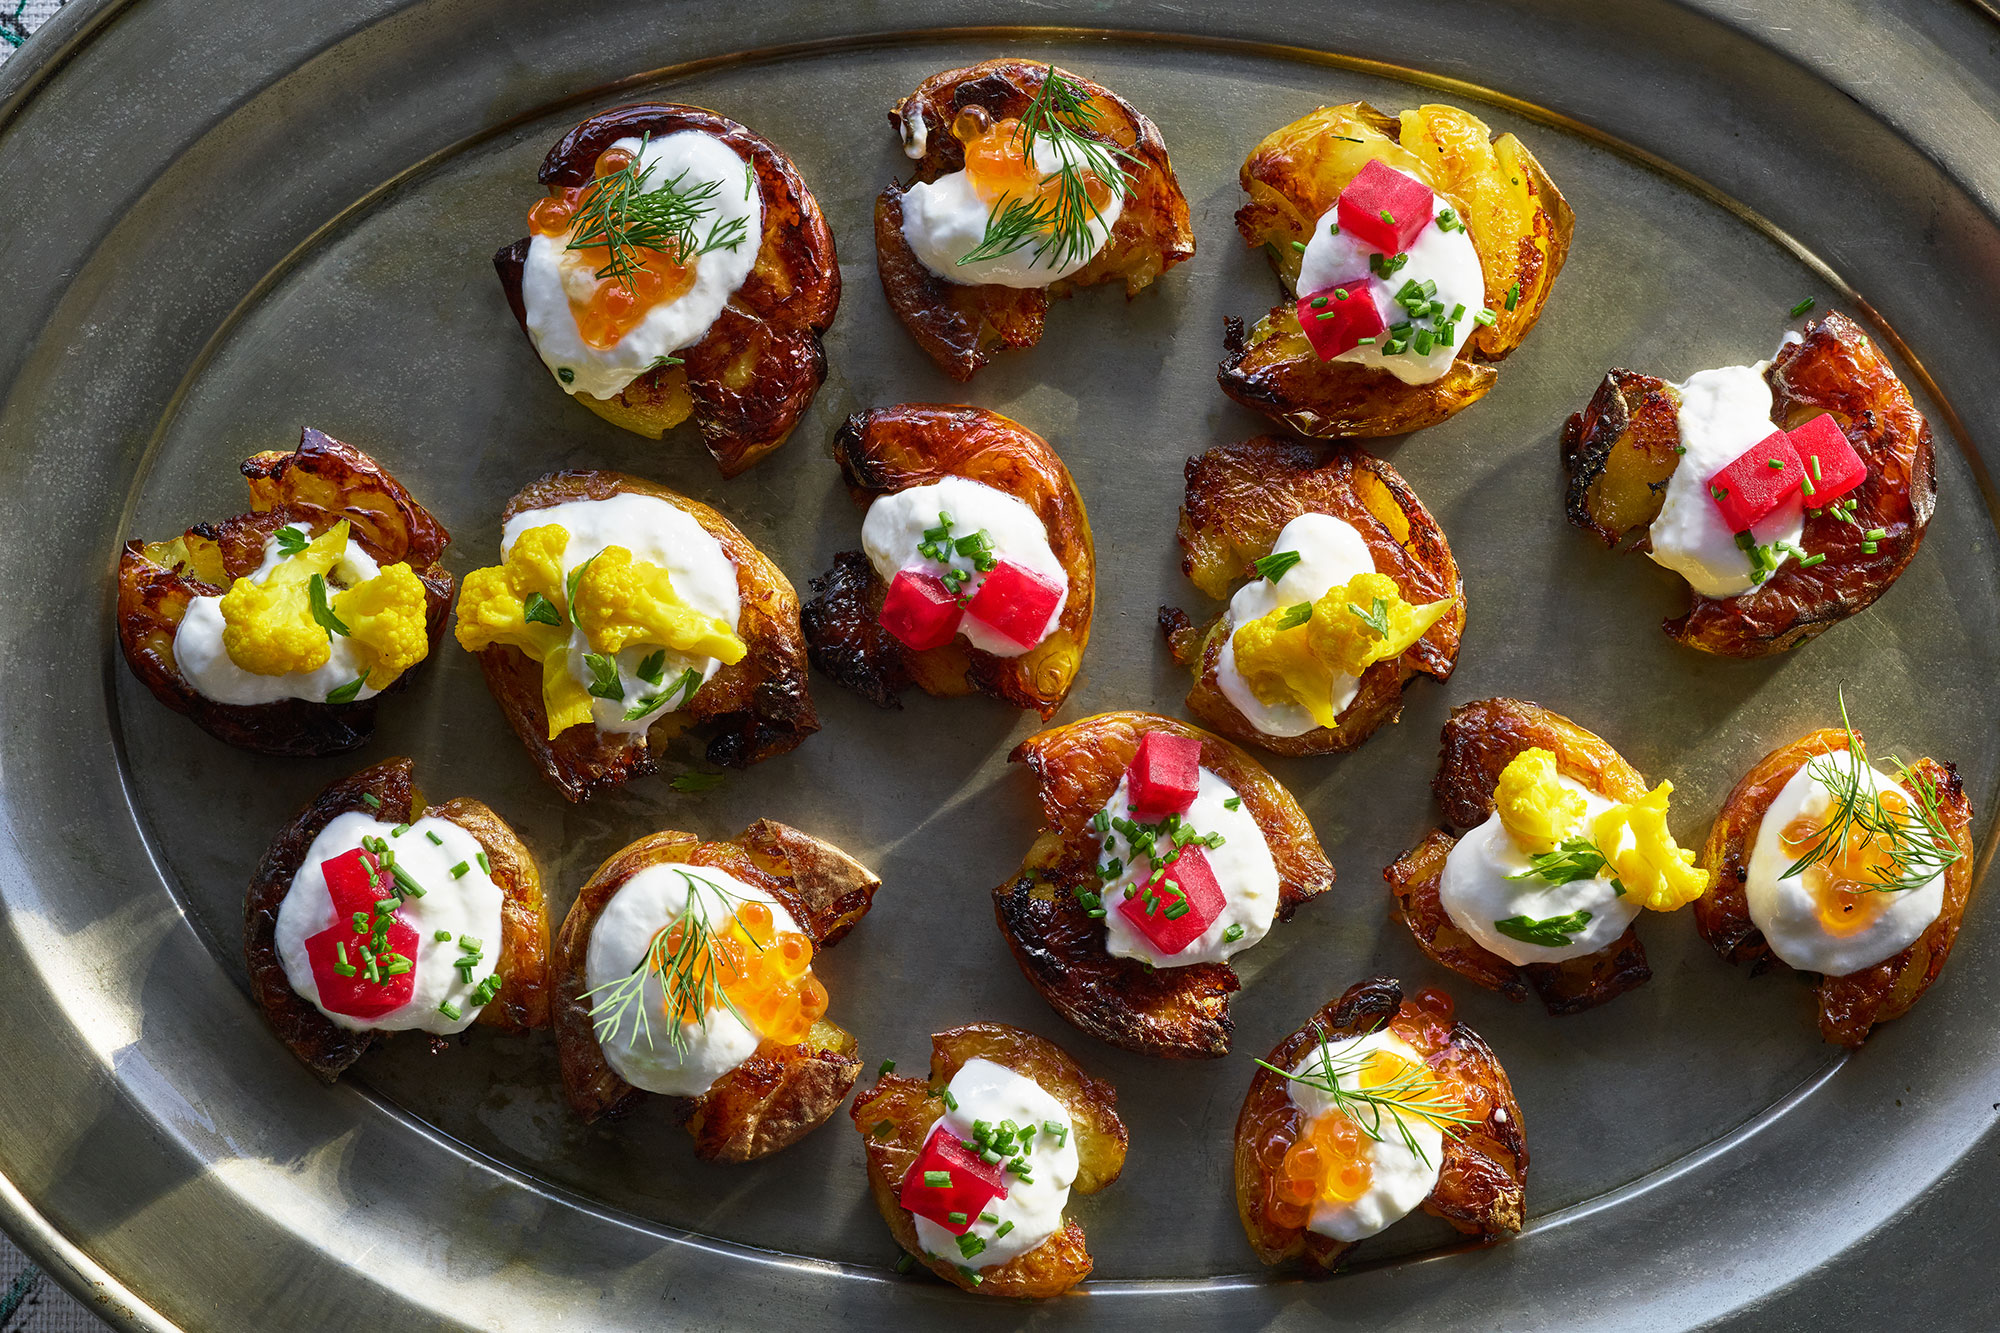 Crispy Smashed Potatoes with Gin-Spiked Sour Cream